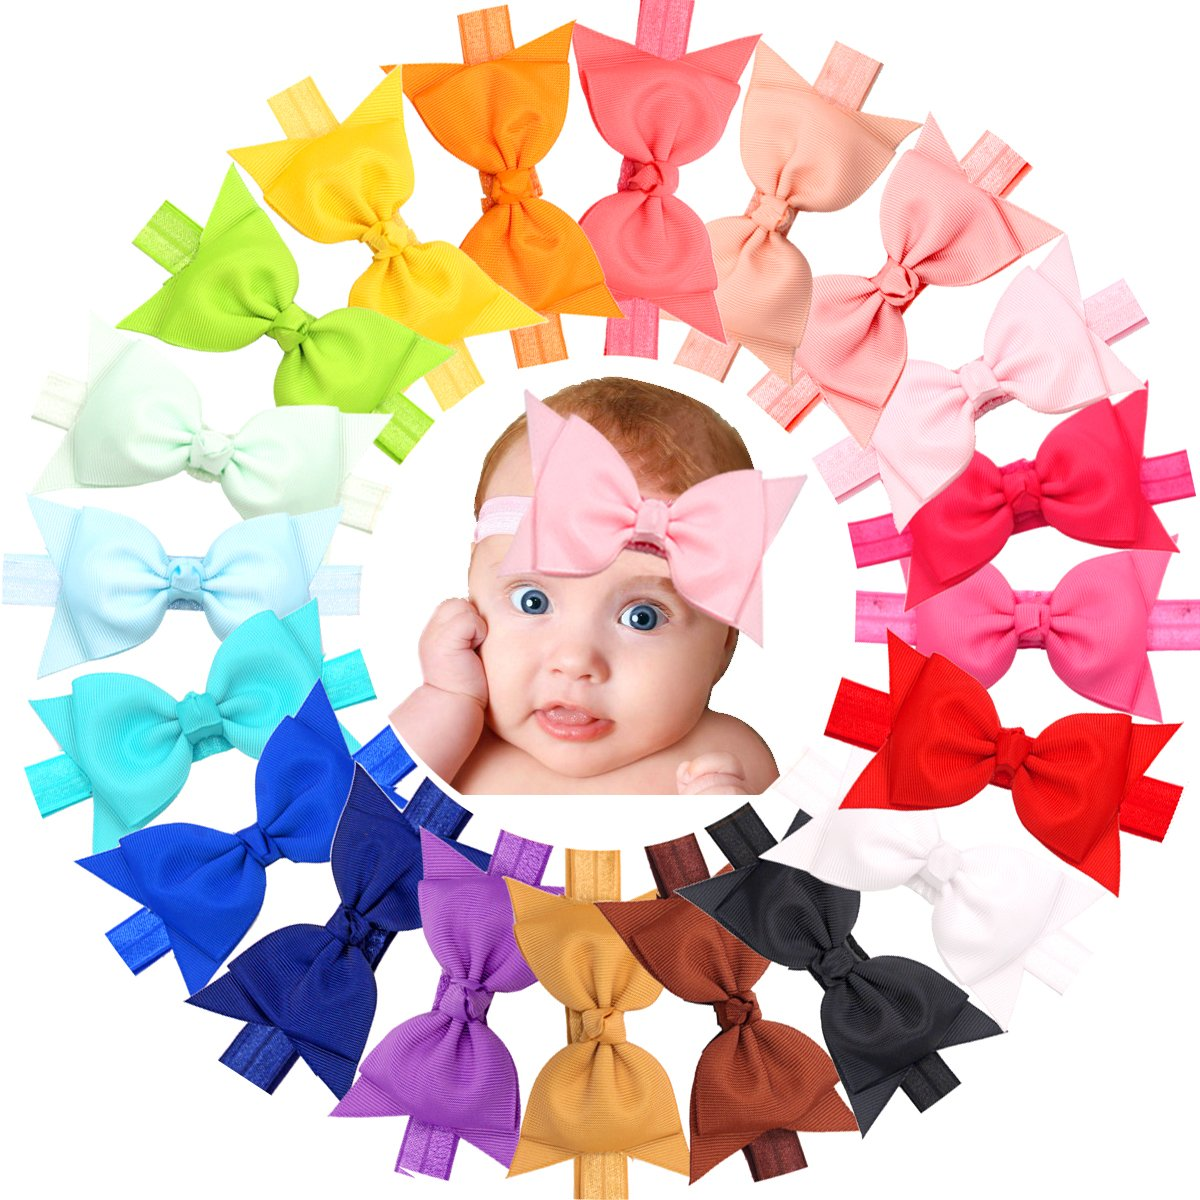 20pcs Baby Girls headbands With 4 Hair Bows Soft Band for Infant Newborn Toddlers JoYoYo